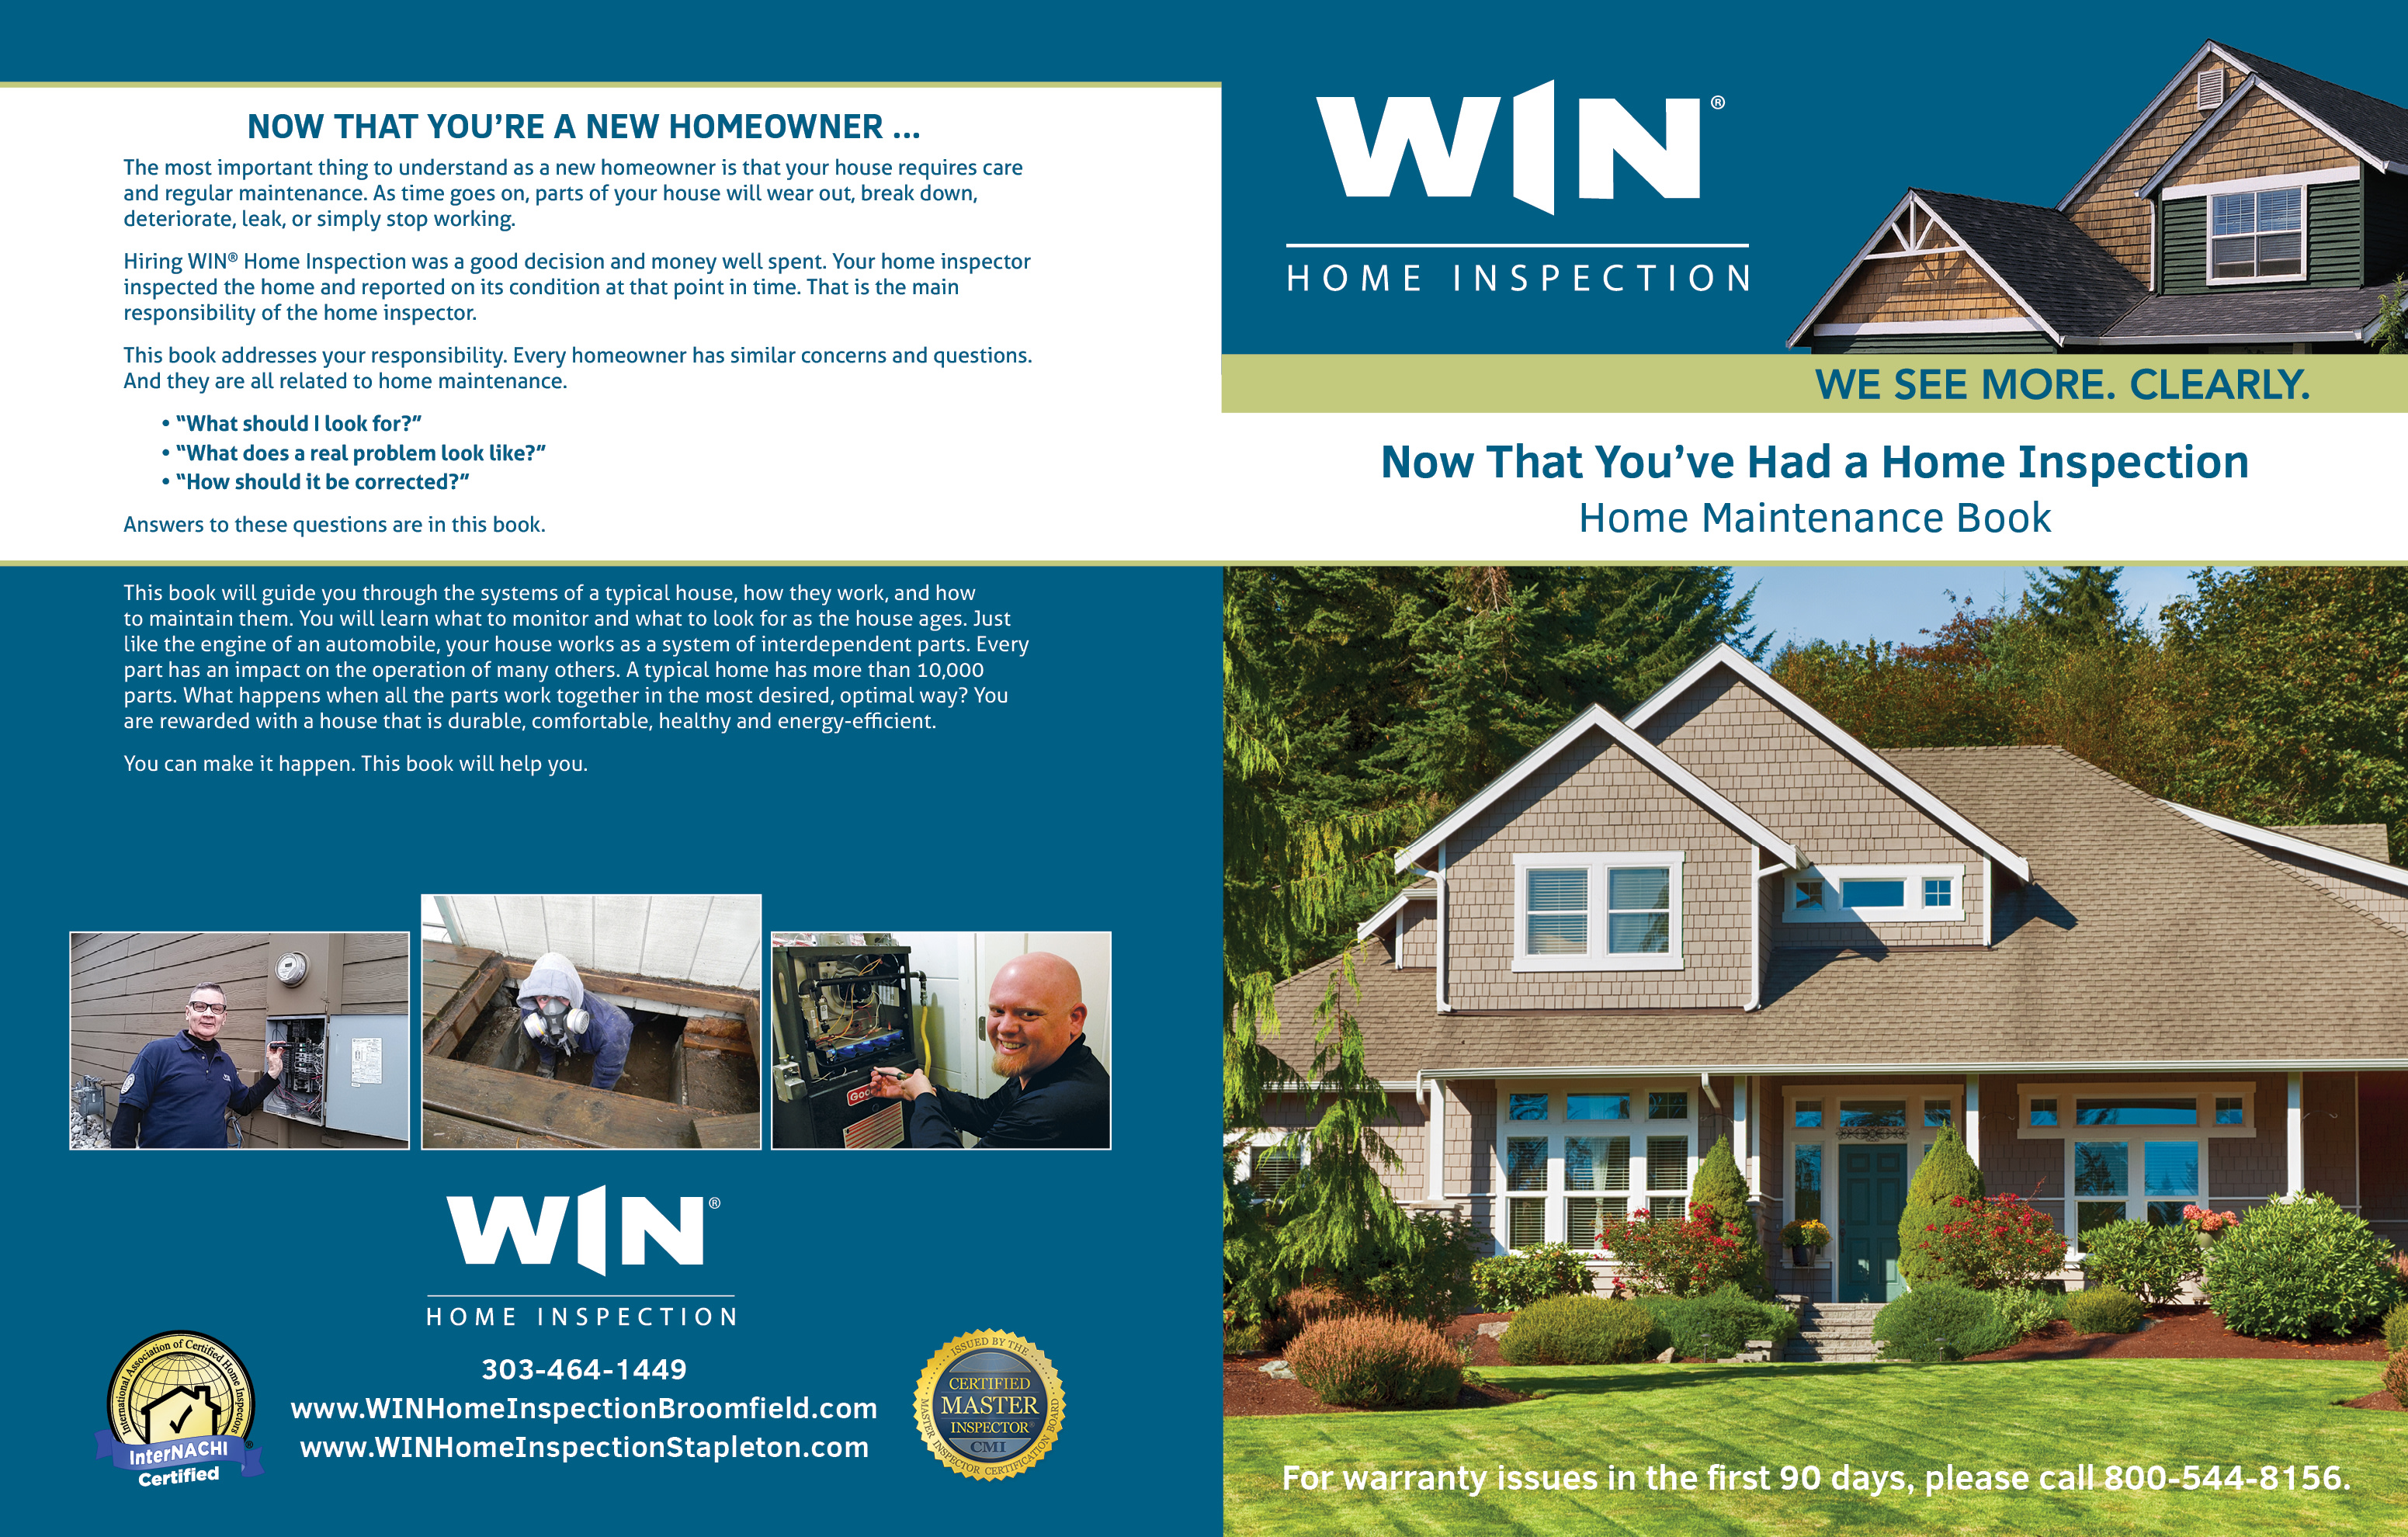 Custom Home Maintenance Book for WIN Home Inspection